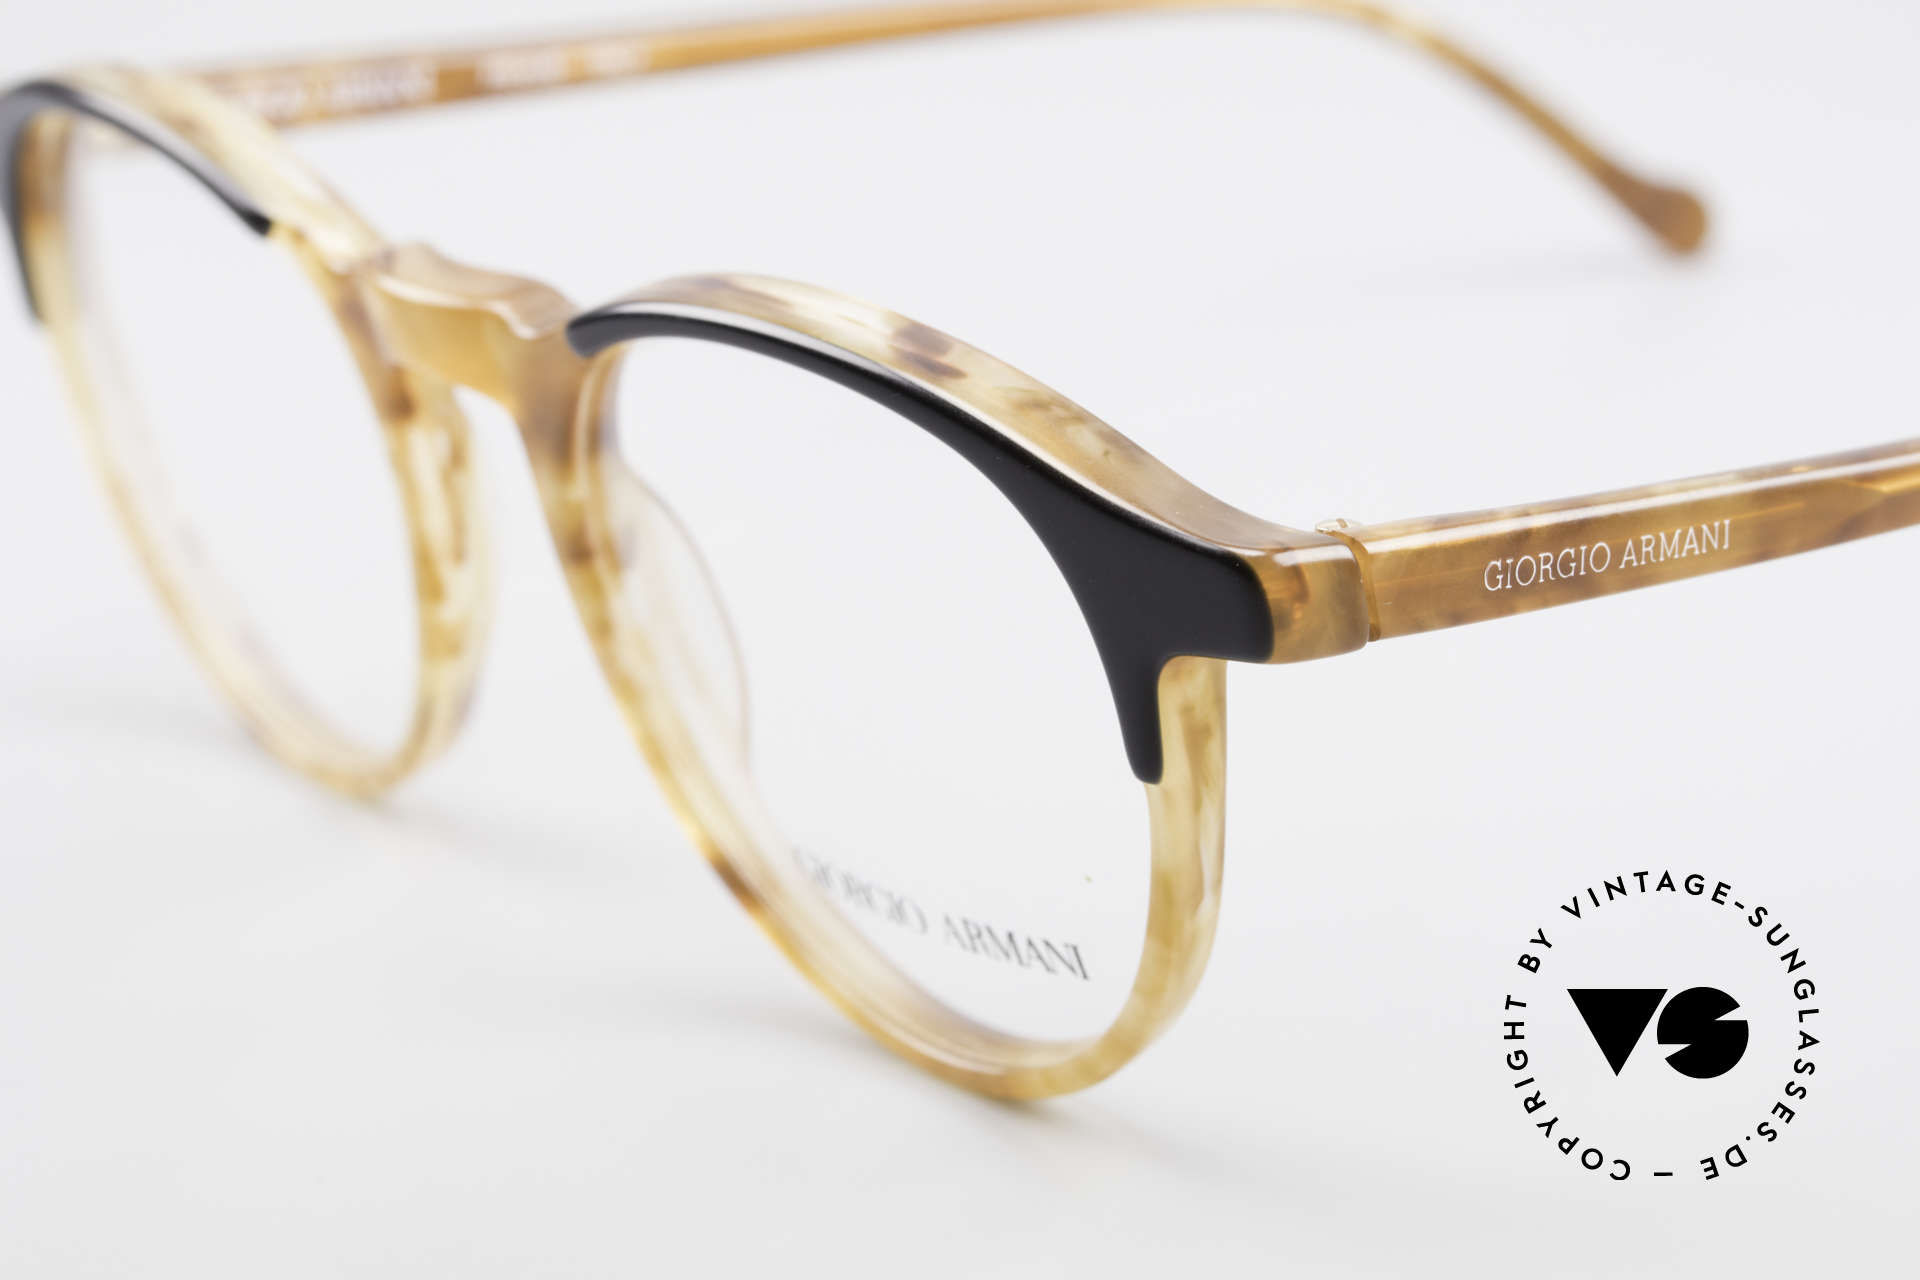 Giorgio Armani 301 Johnny Depp Style Panto Frame, actor Johnny Depp made this style popular, in these days, Made for Men